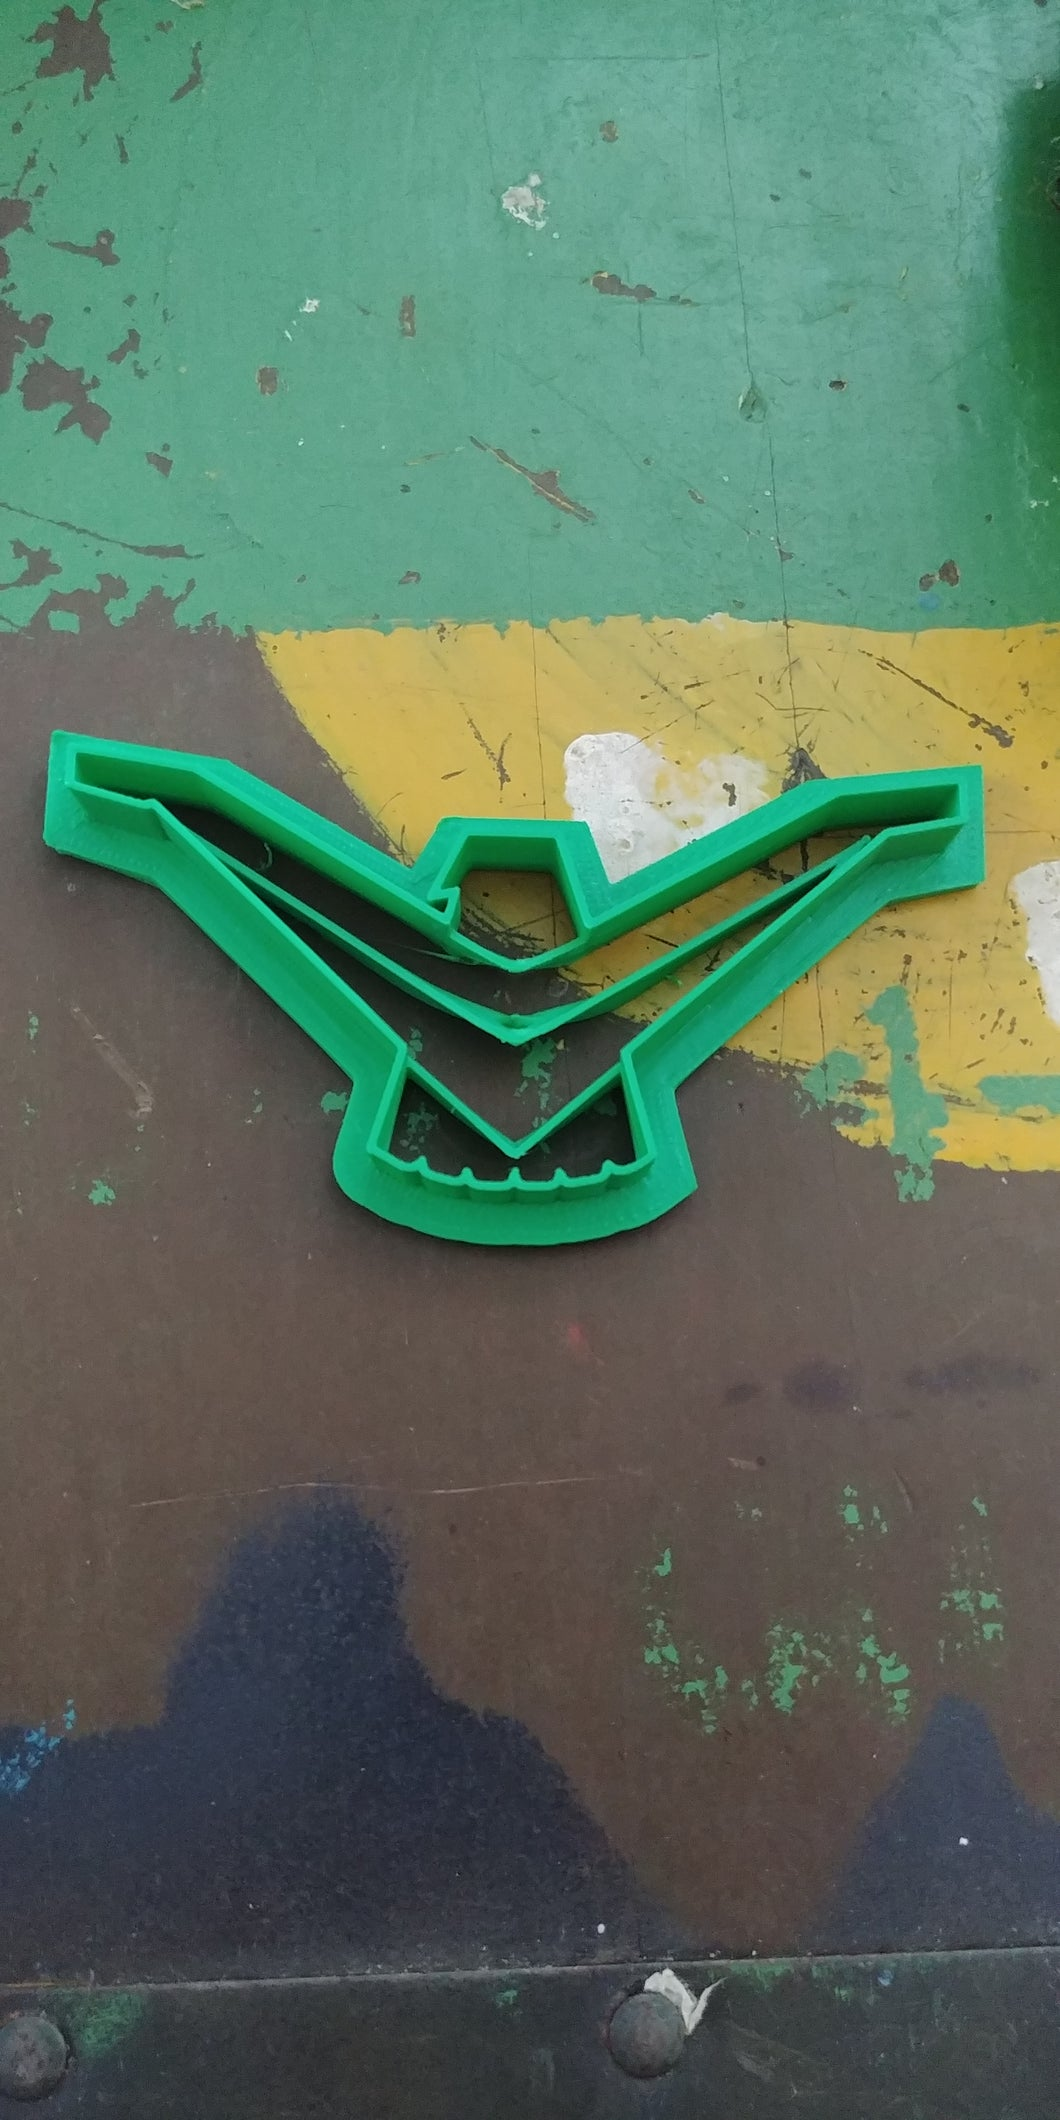 3D Printed Cookie Cutter Inspired by 1958-59 Thunderbird Emblem